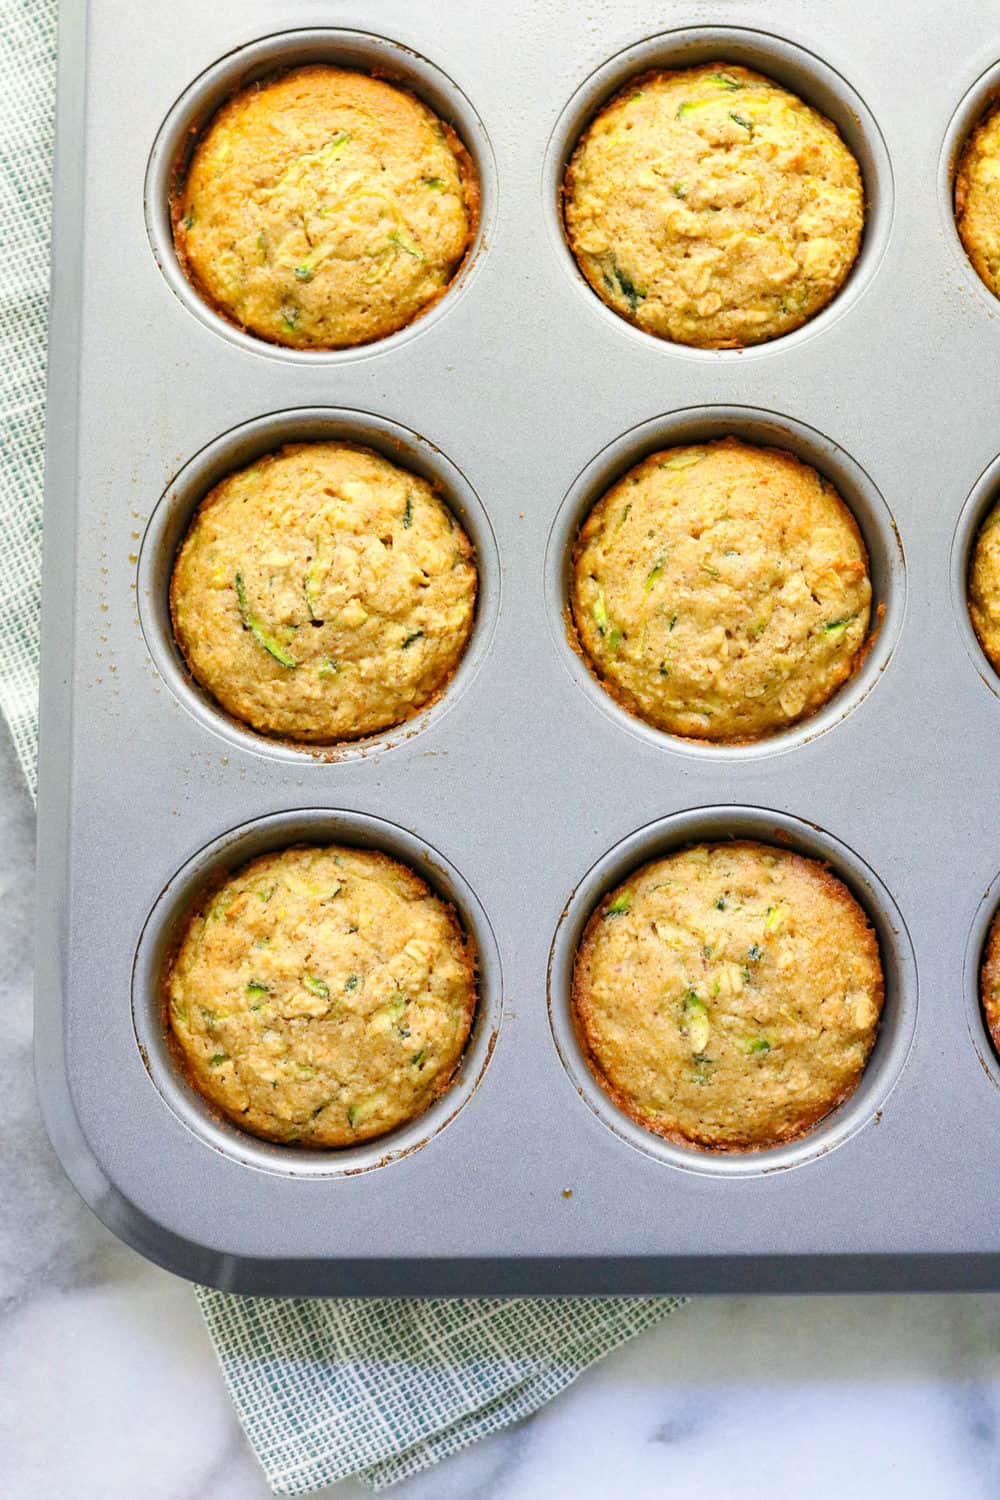 Baked zucchini muffins in a muffin pan